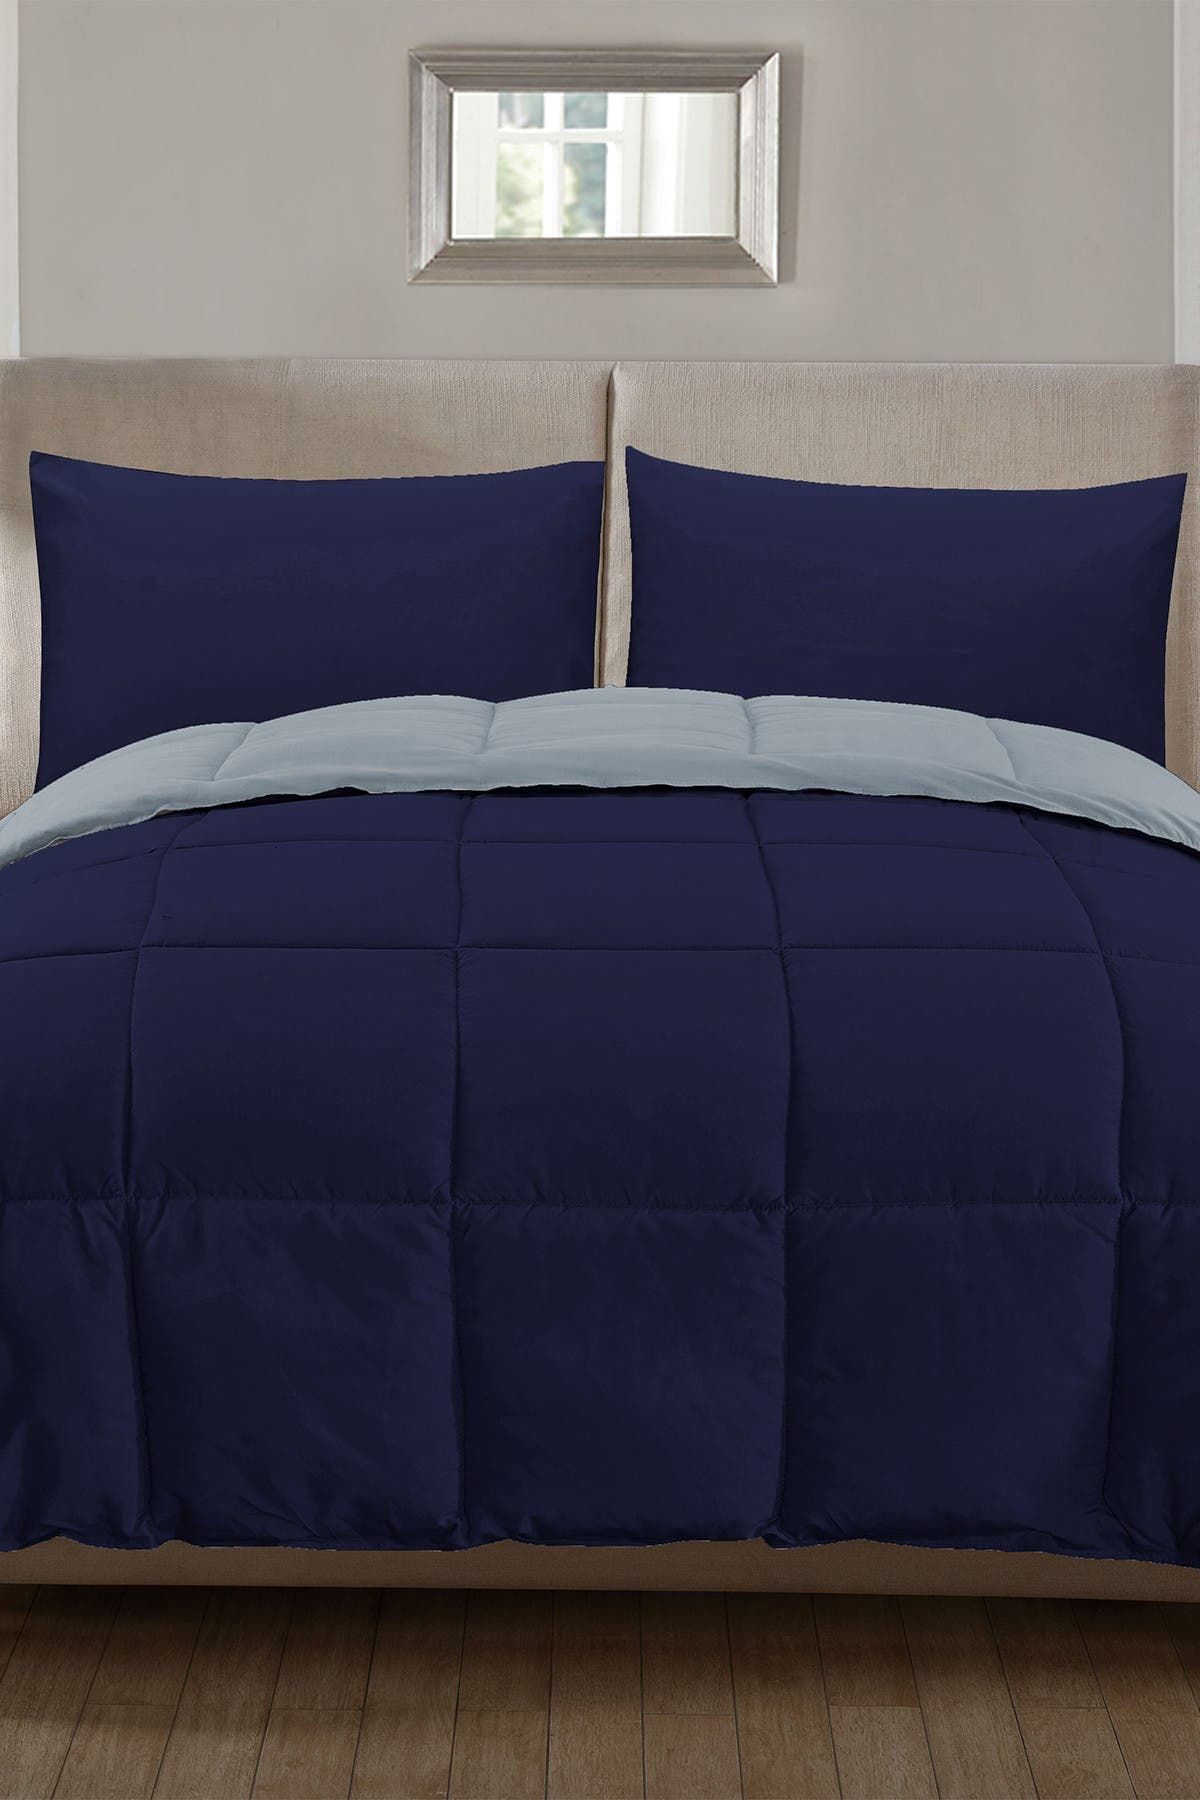 Duck River Textile Full Jackson Down Alternative Comforter Set Dark Blue Light Blue Nordstrom Rack